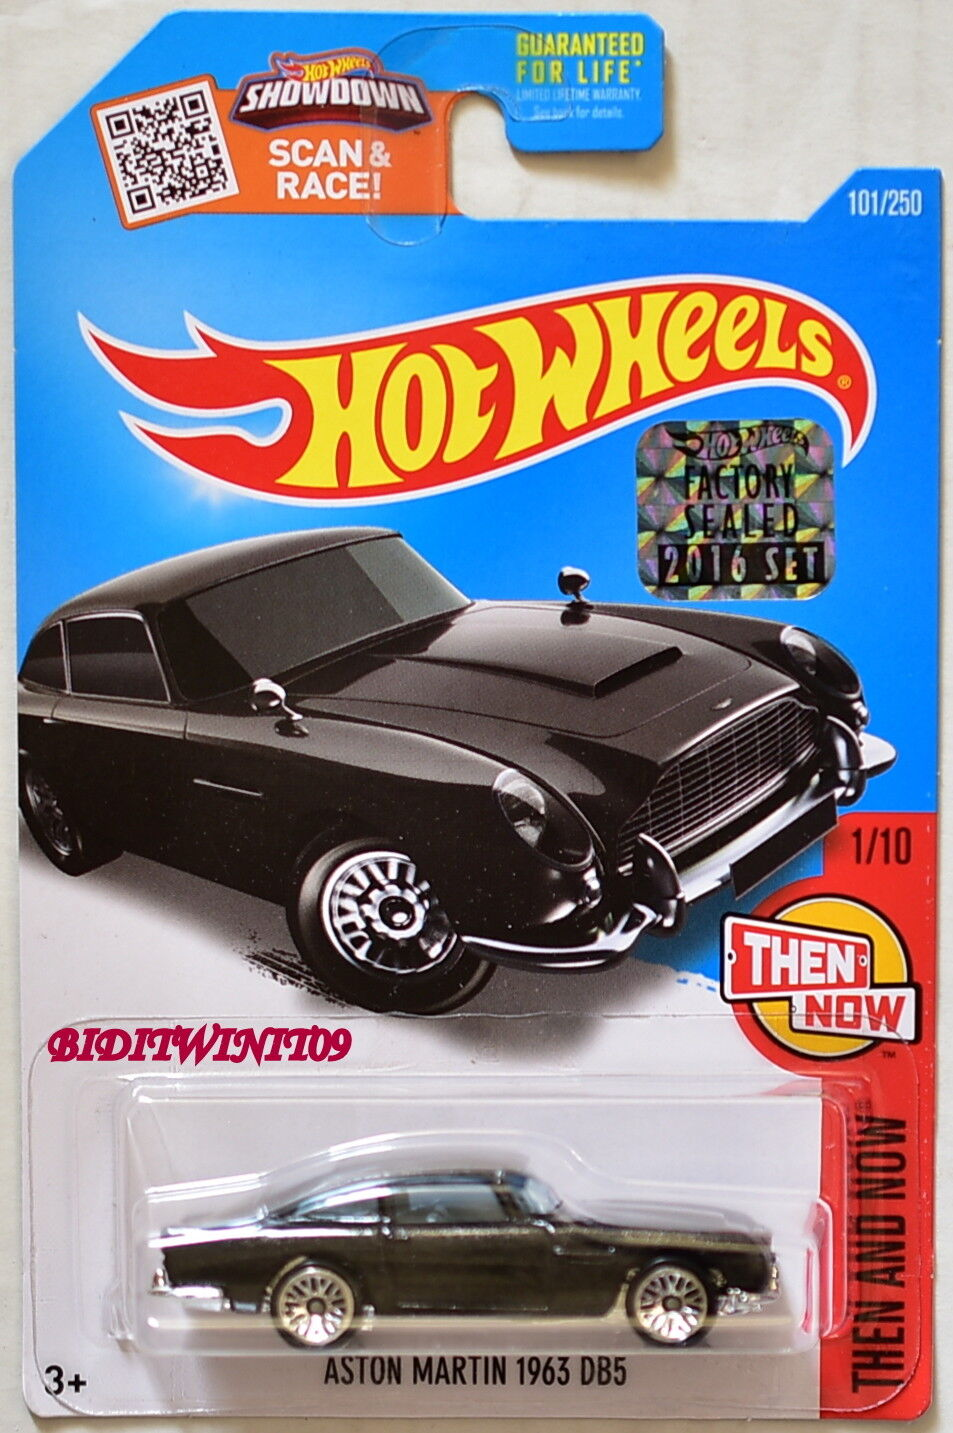 Hot Hot Hot Wheels 2016 Poi And Now Aston Martin 1963 DB5 Nero Sigillato in Fabbrica 66196b